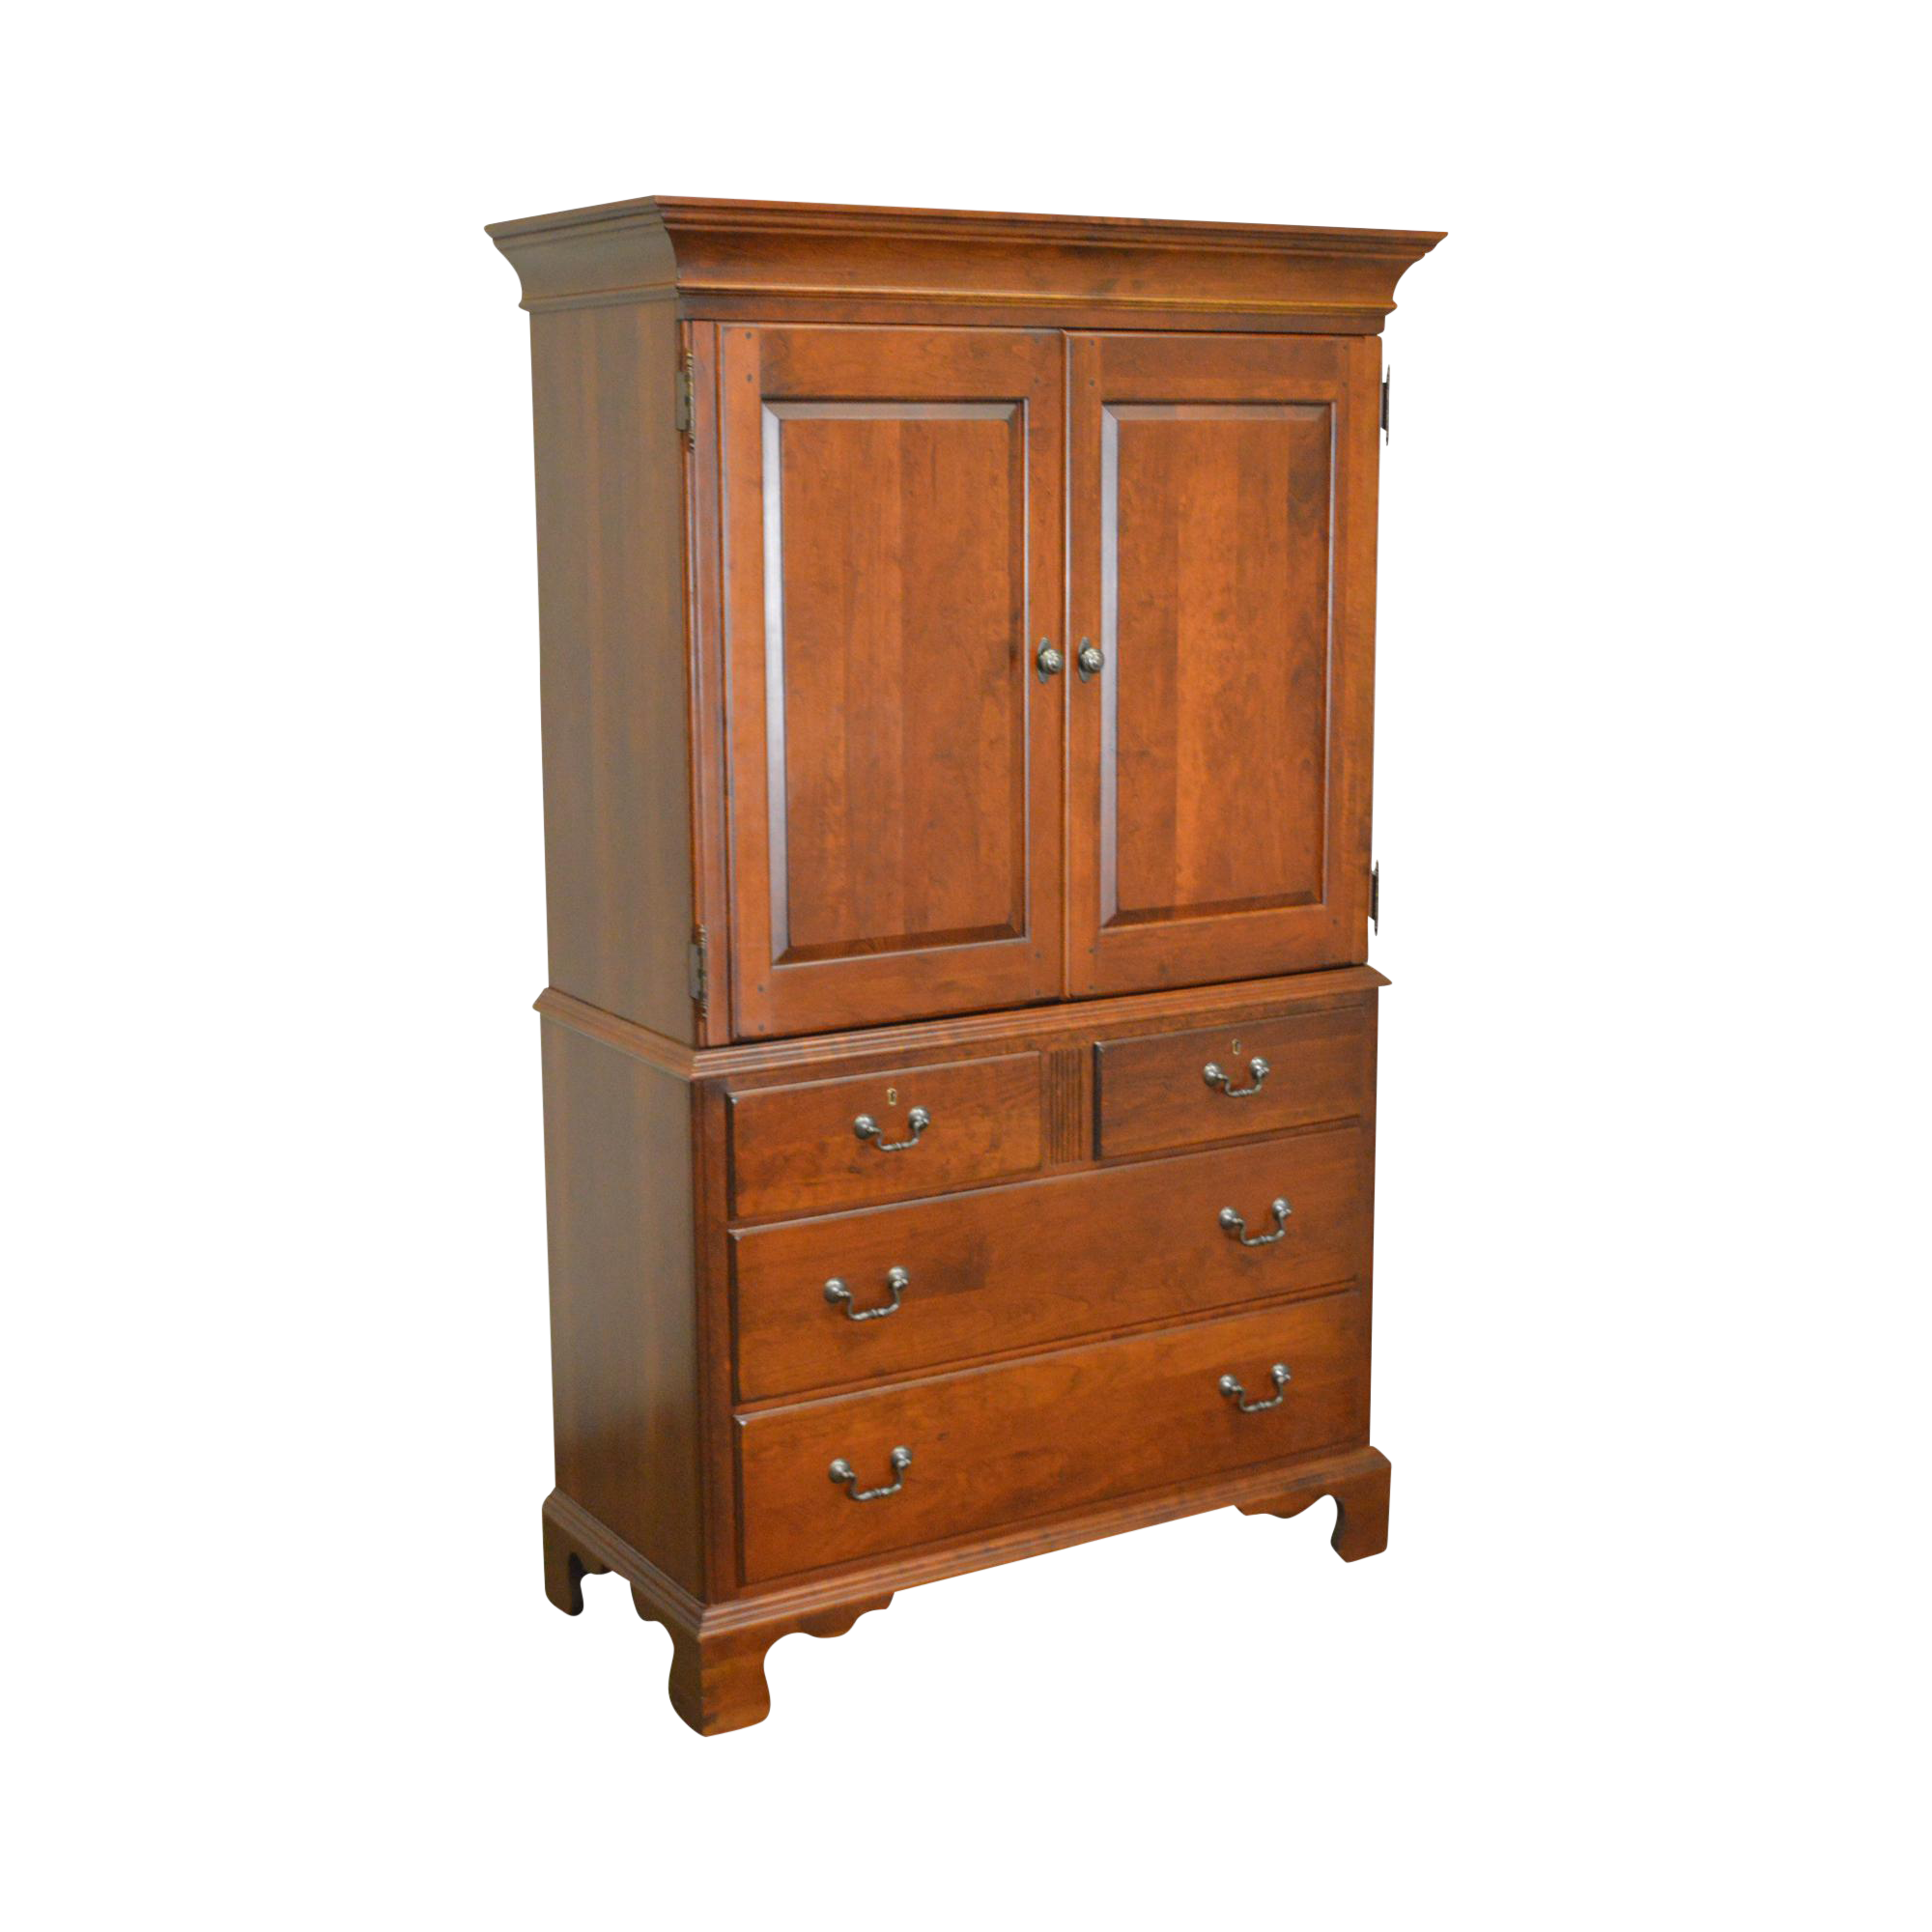 Pennsylvania House Traditional Cherry Wood Bedroom Armoire Cabinet Chairish